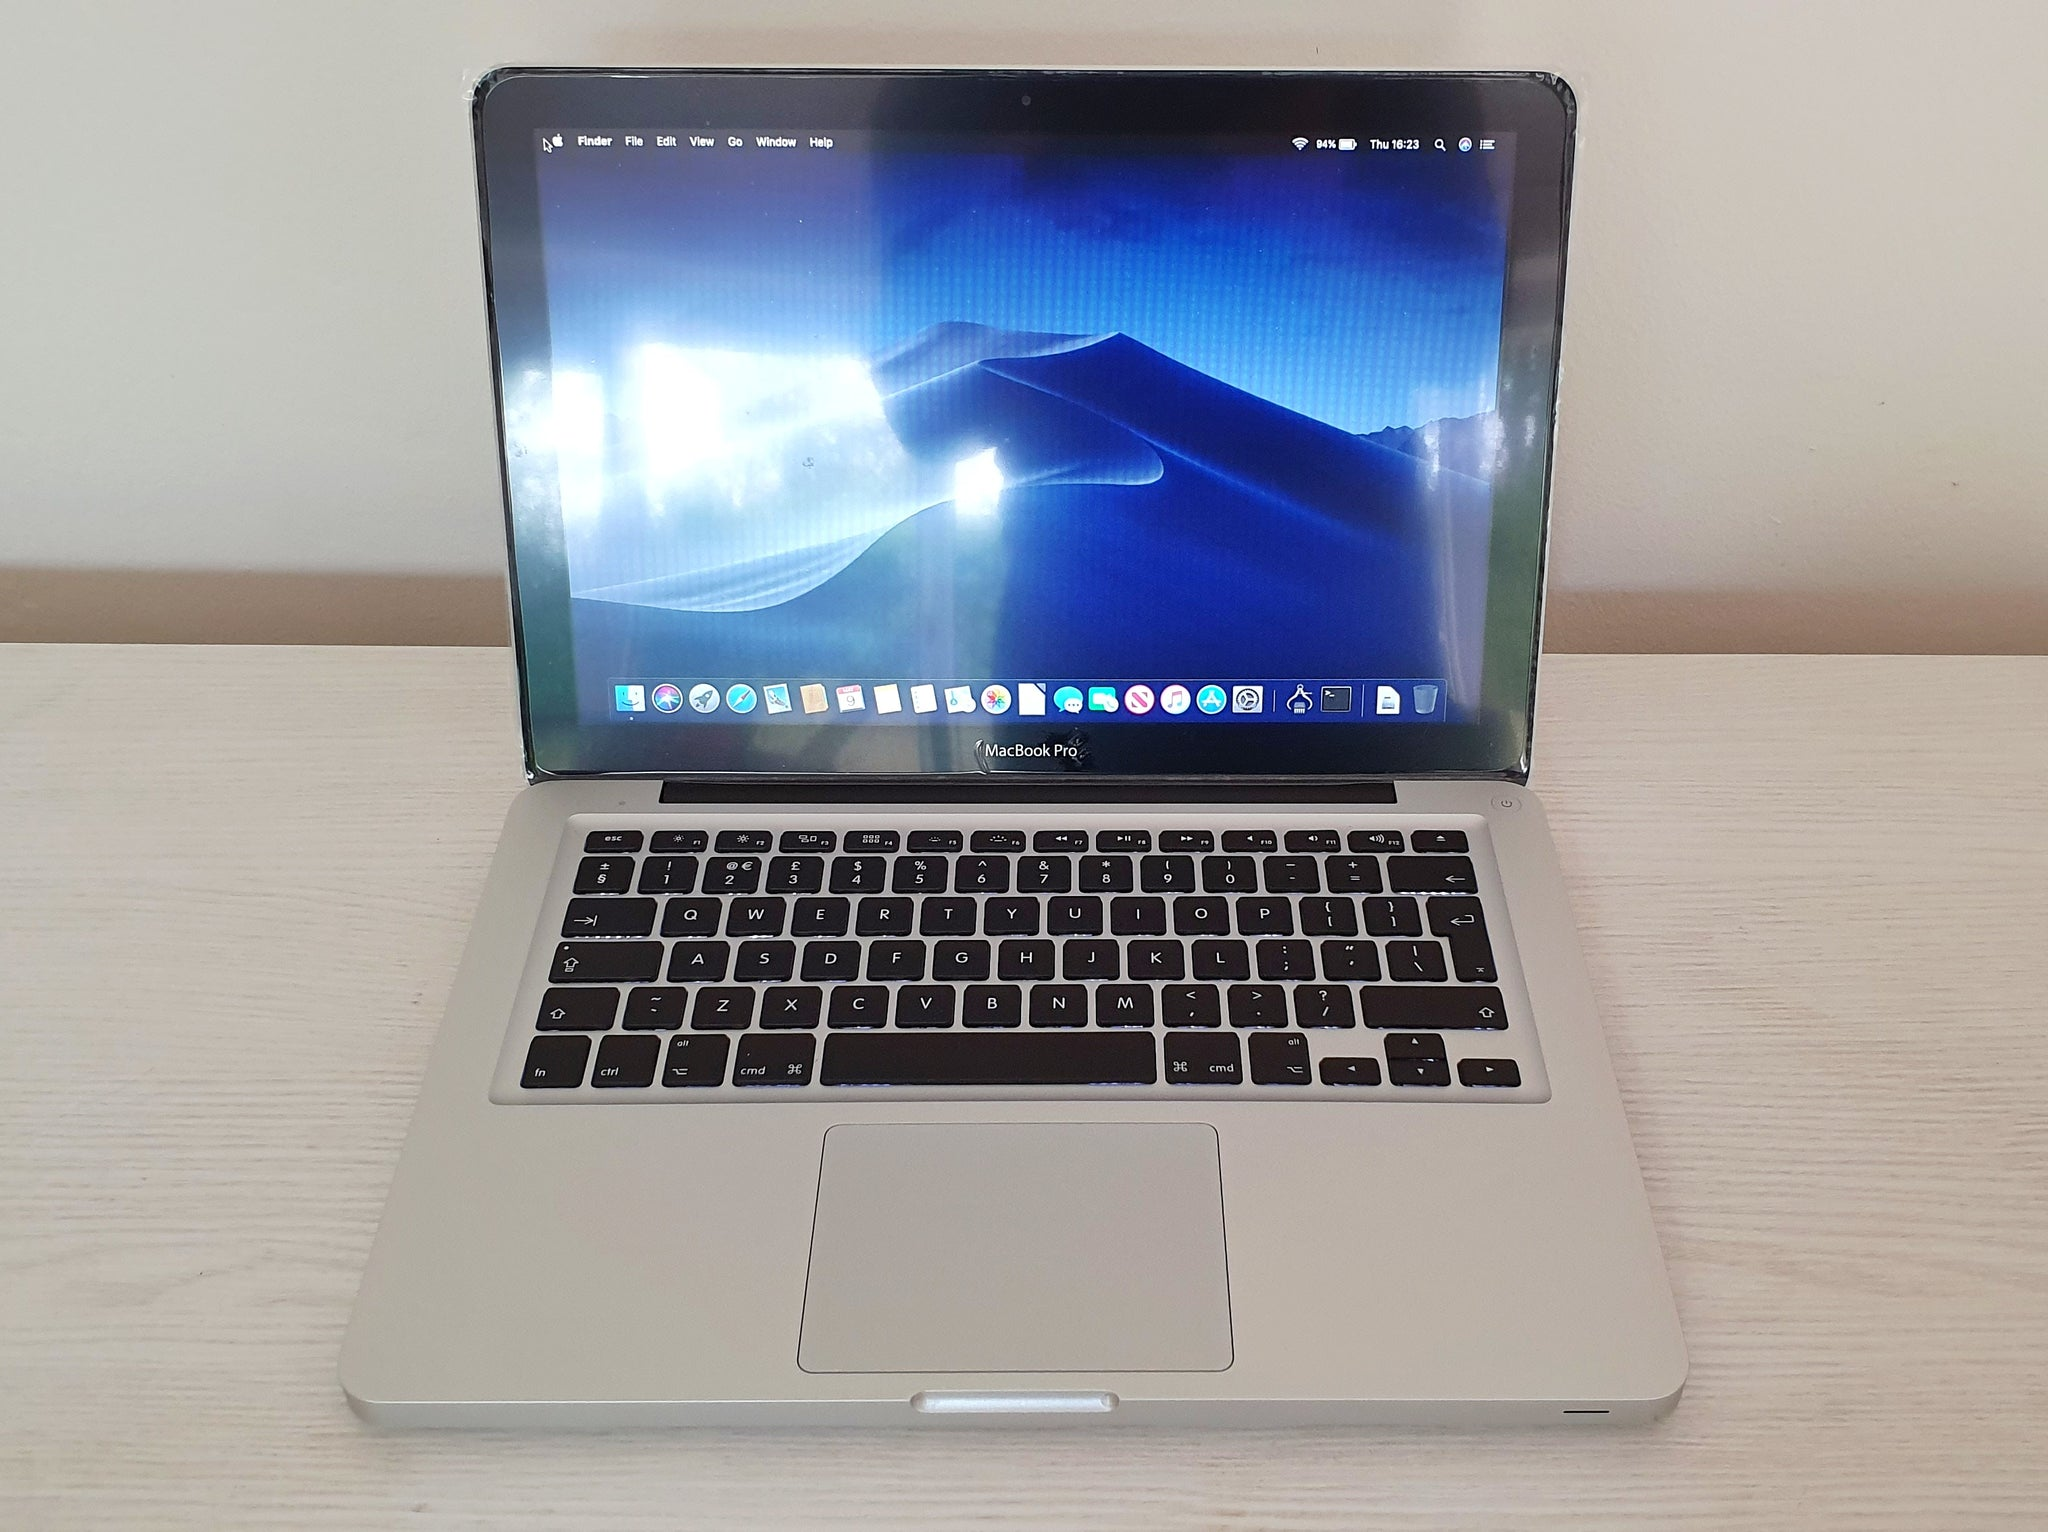 "MacBook Pro 13"" A1278 i5 16GB 480GB SSD #10912 SOLD"